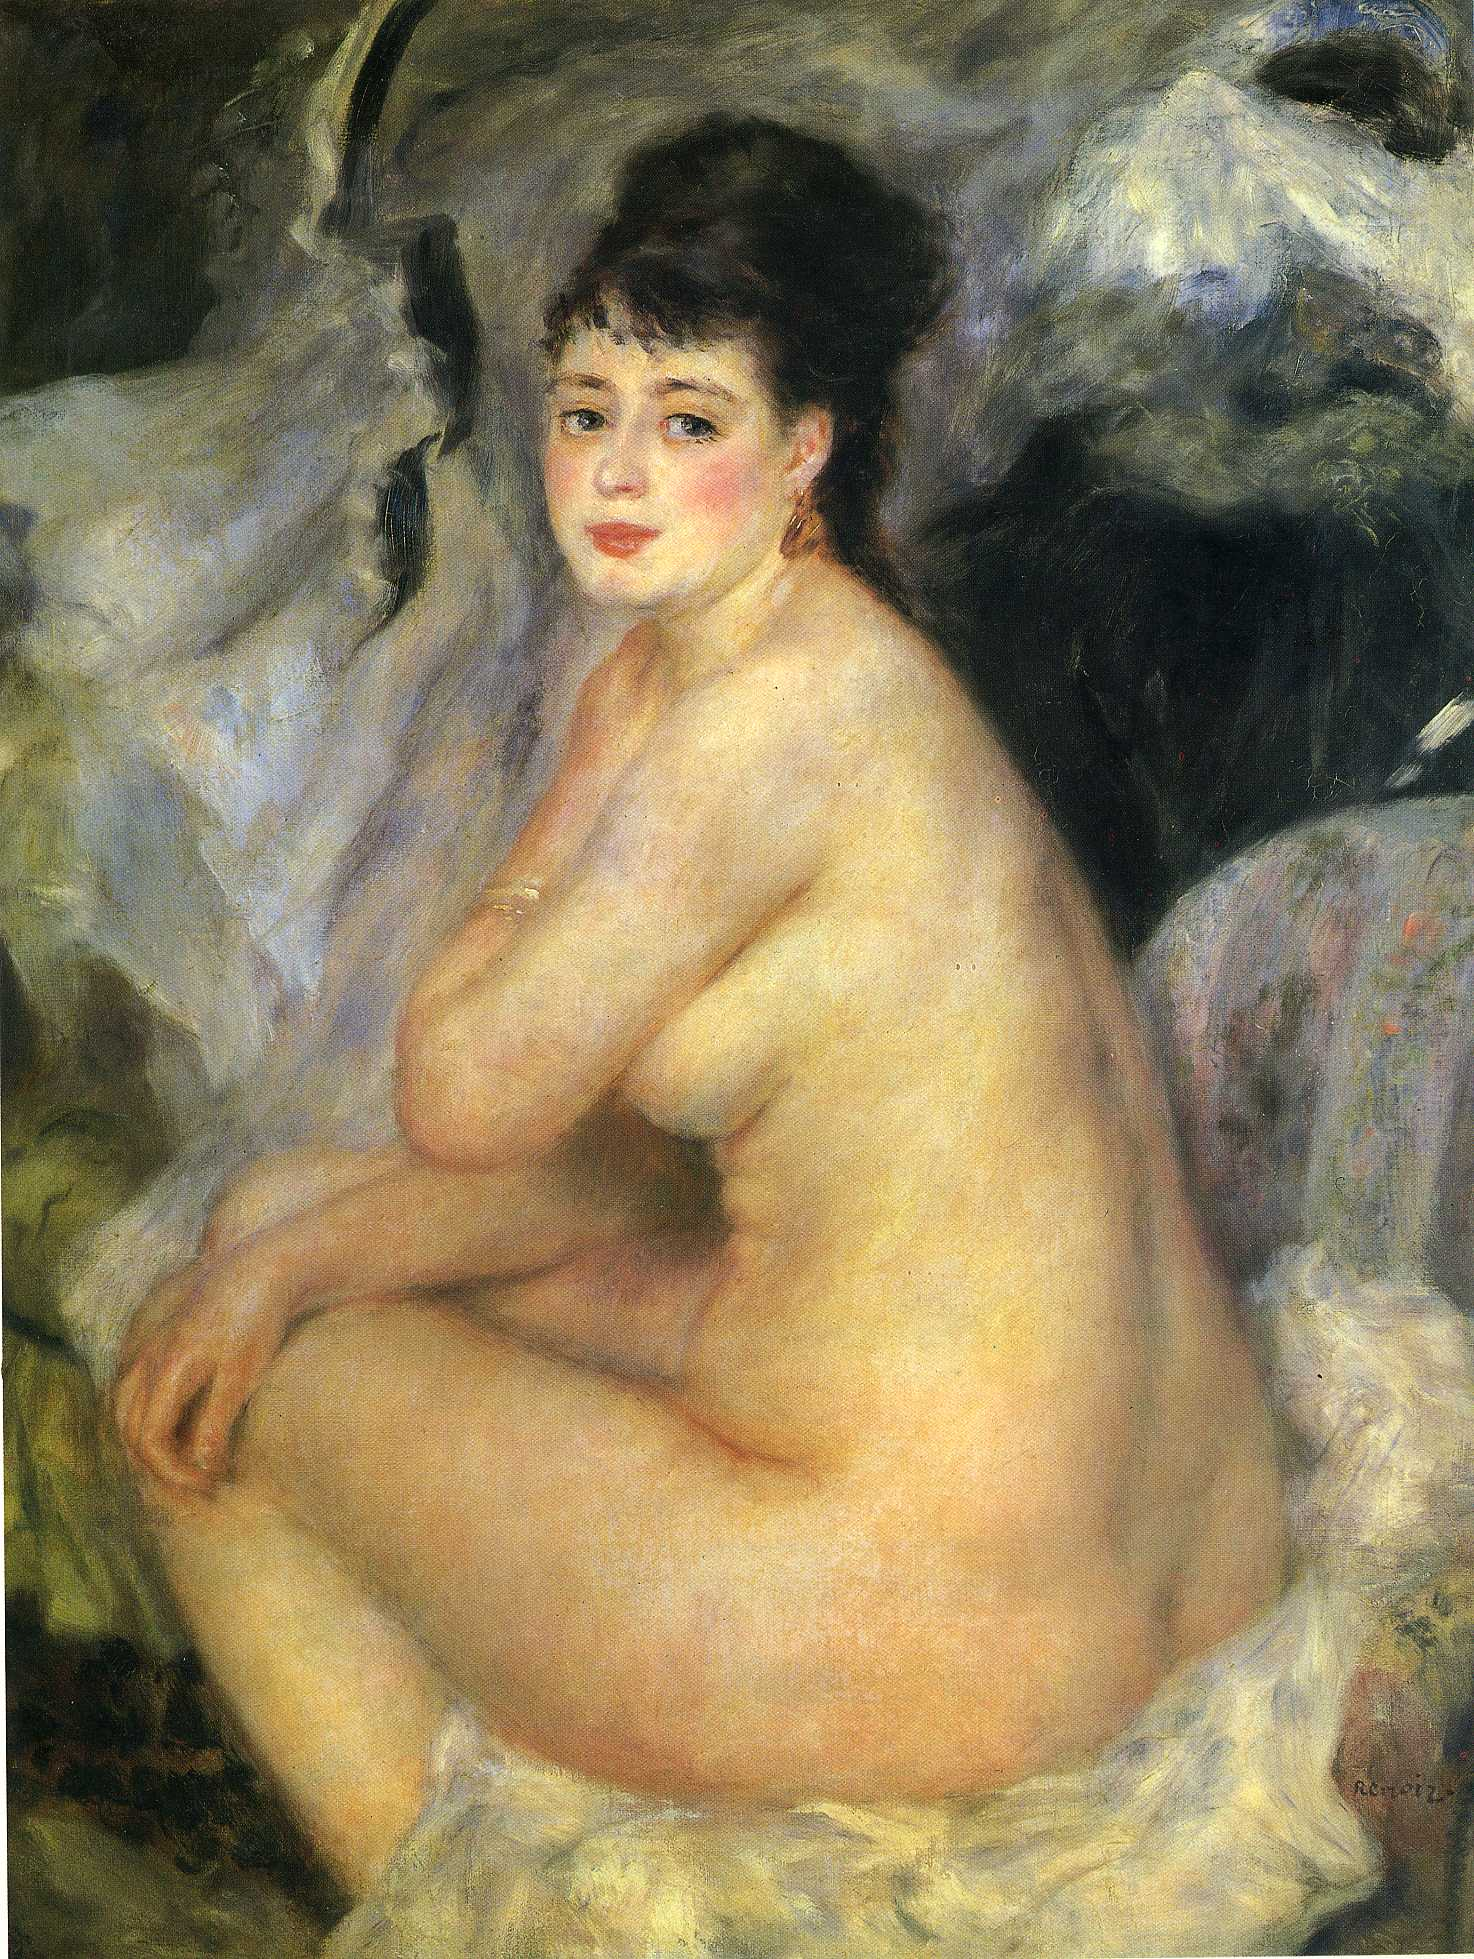 Renoirs nude on a couch paintint